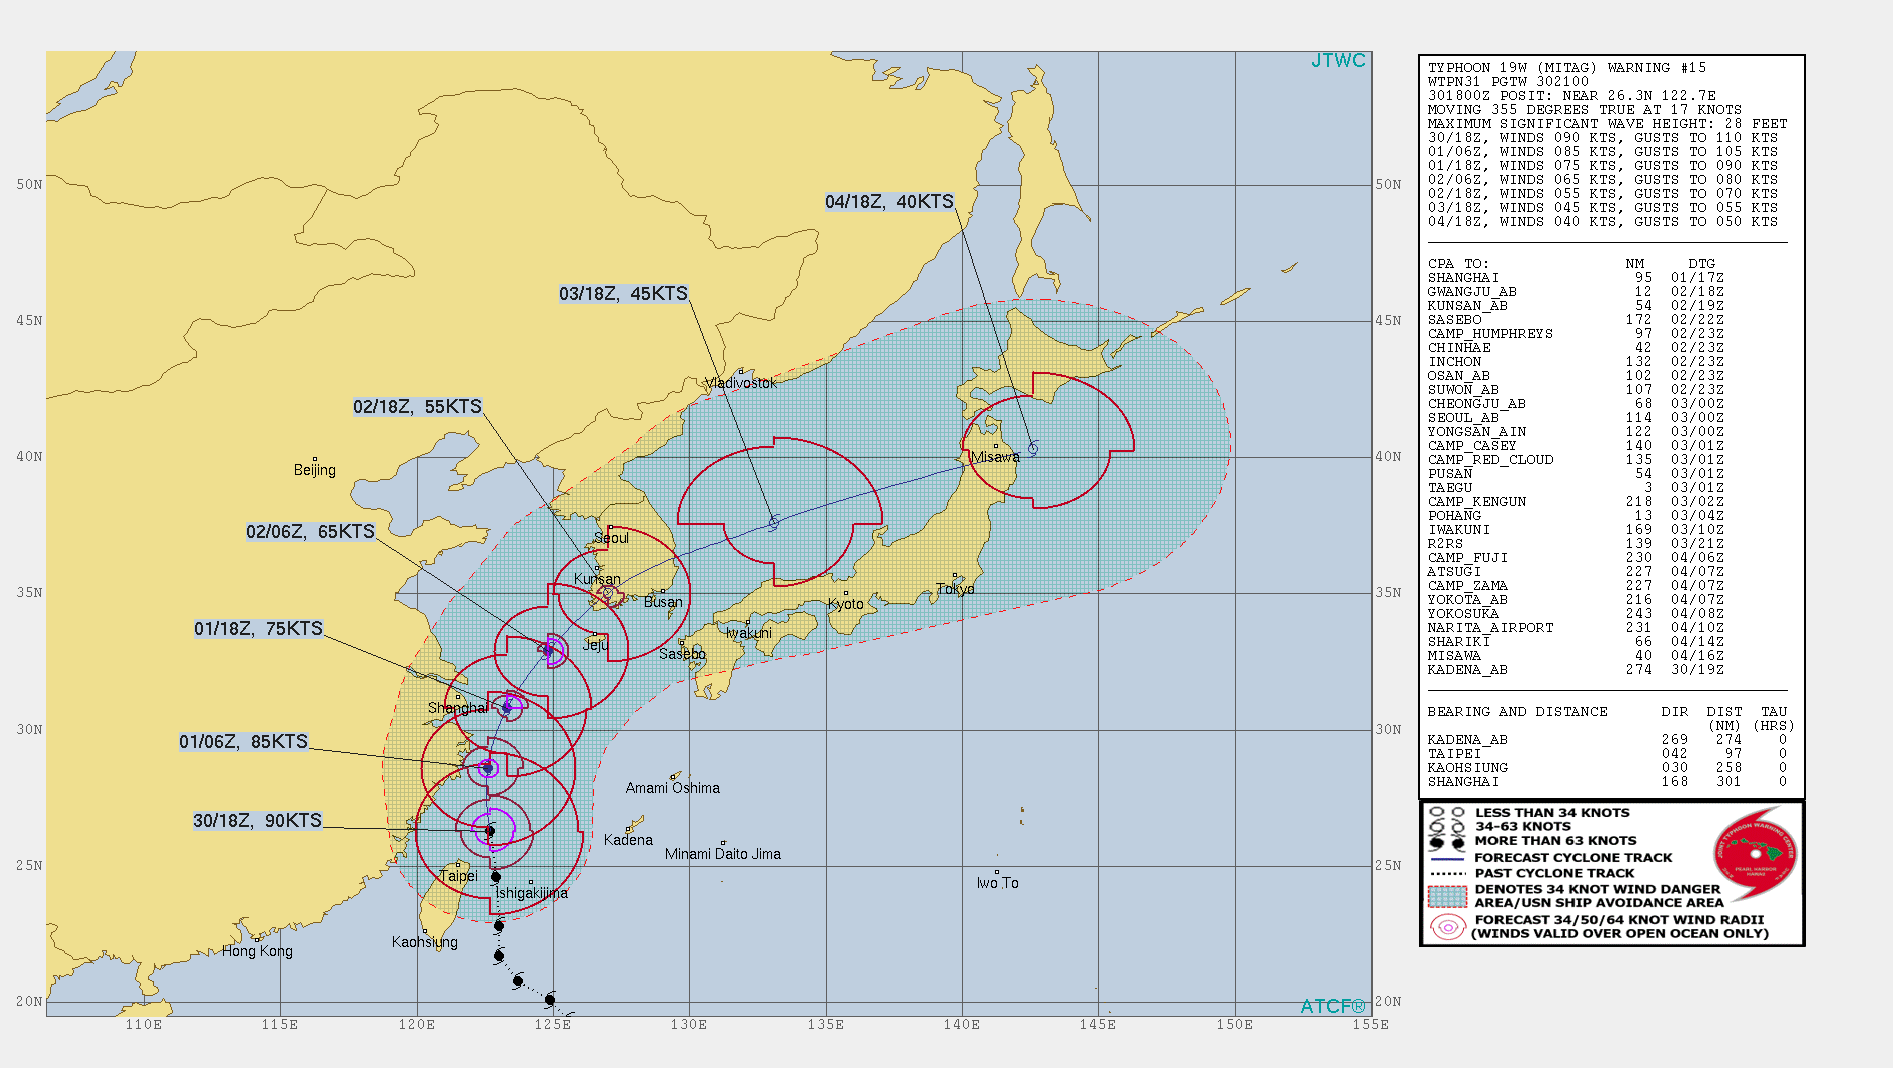 photo:JTWC;desc:Warning #15